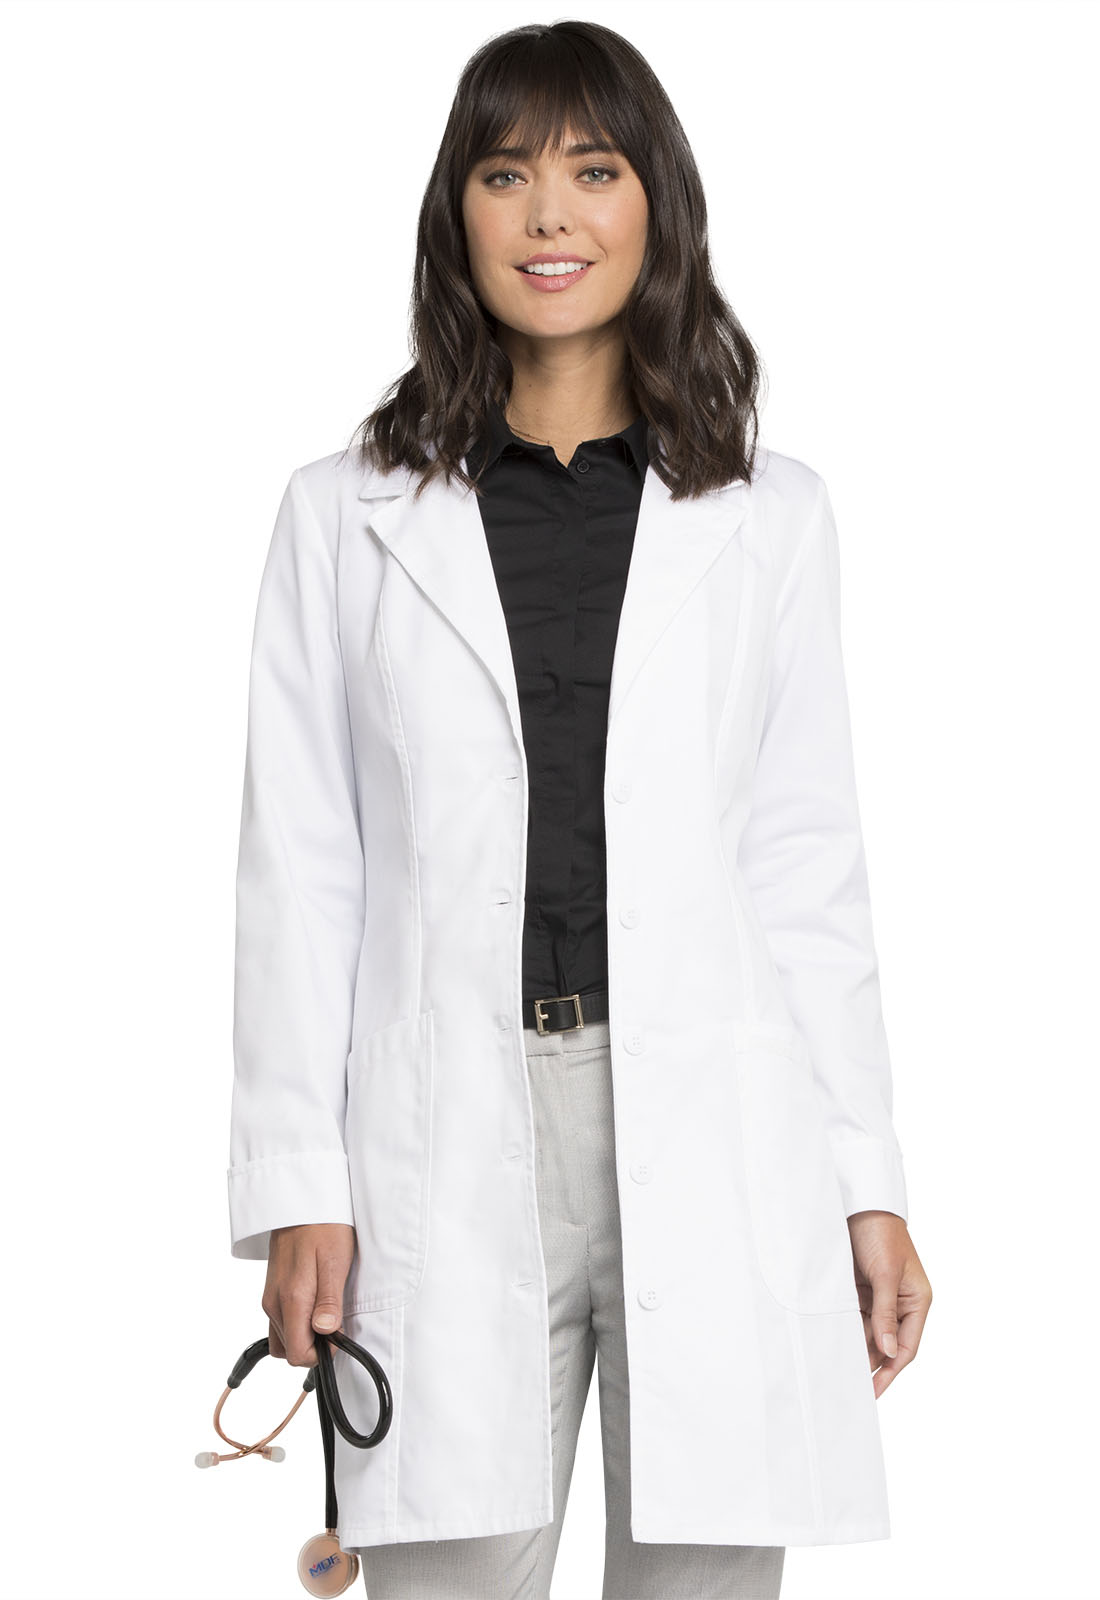 Professional Whites 36 Lab Coat In White Wht From